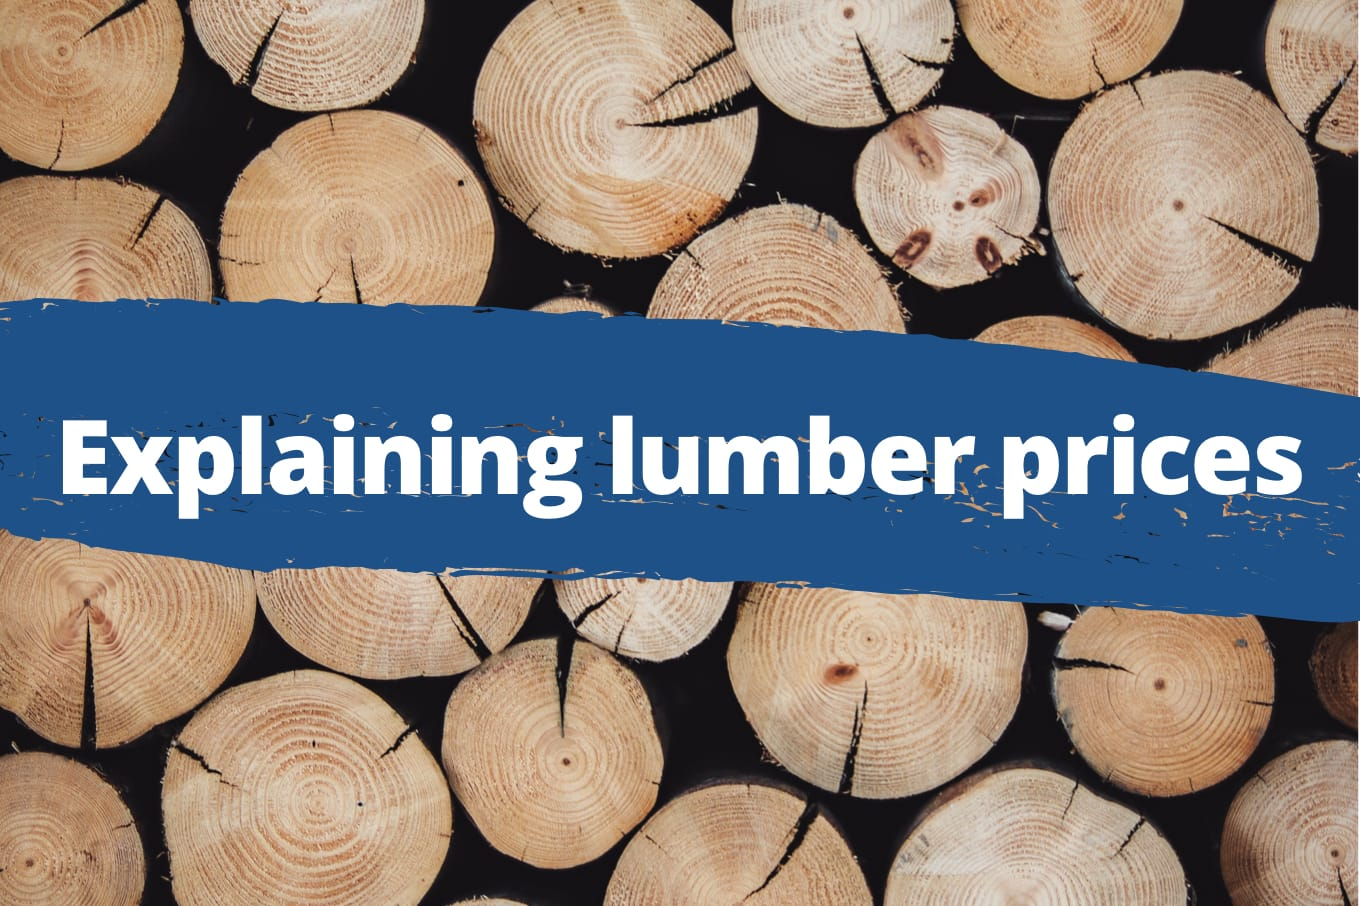 Why Are Lumber Prices So High? Here Are the Primary Reasons